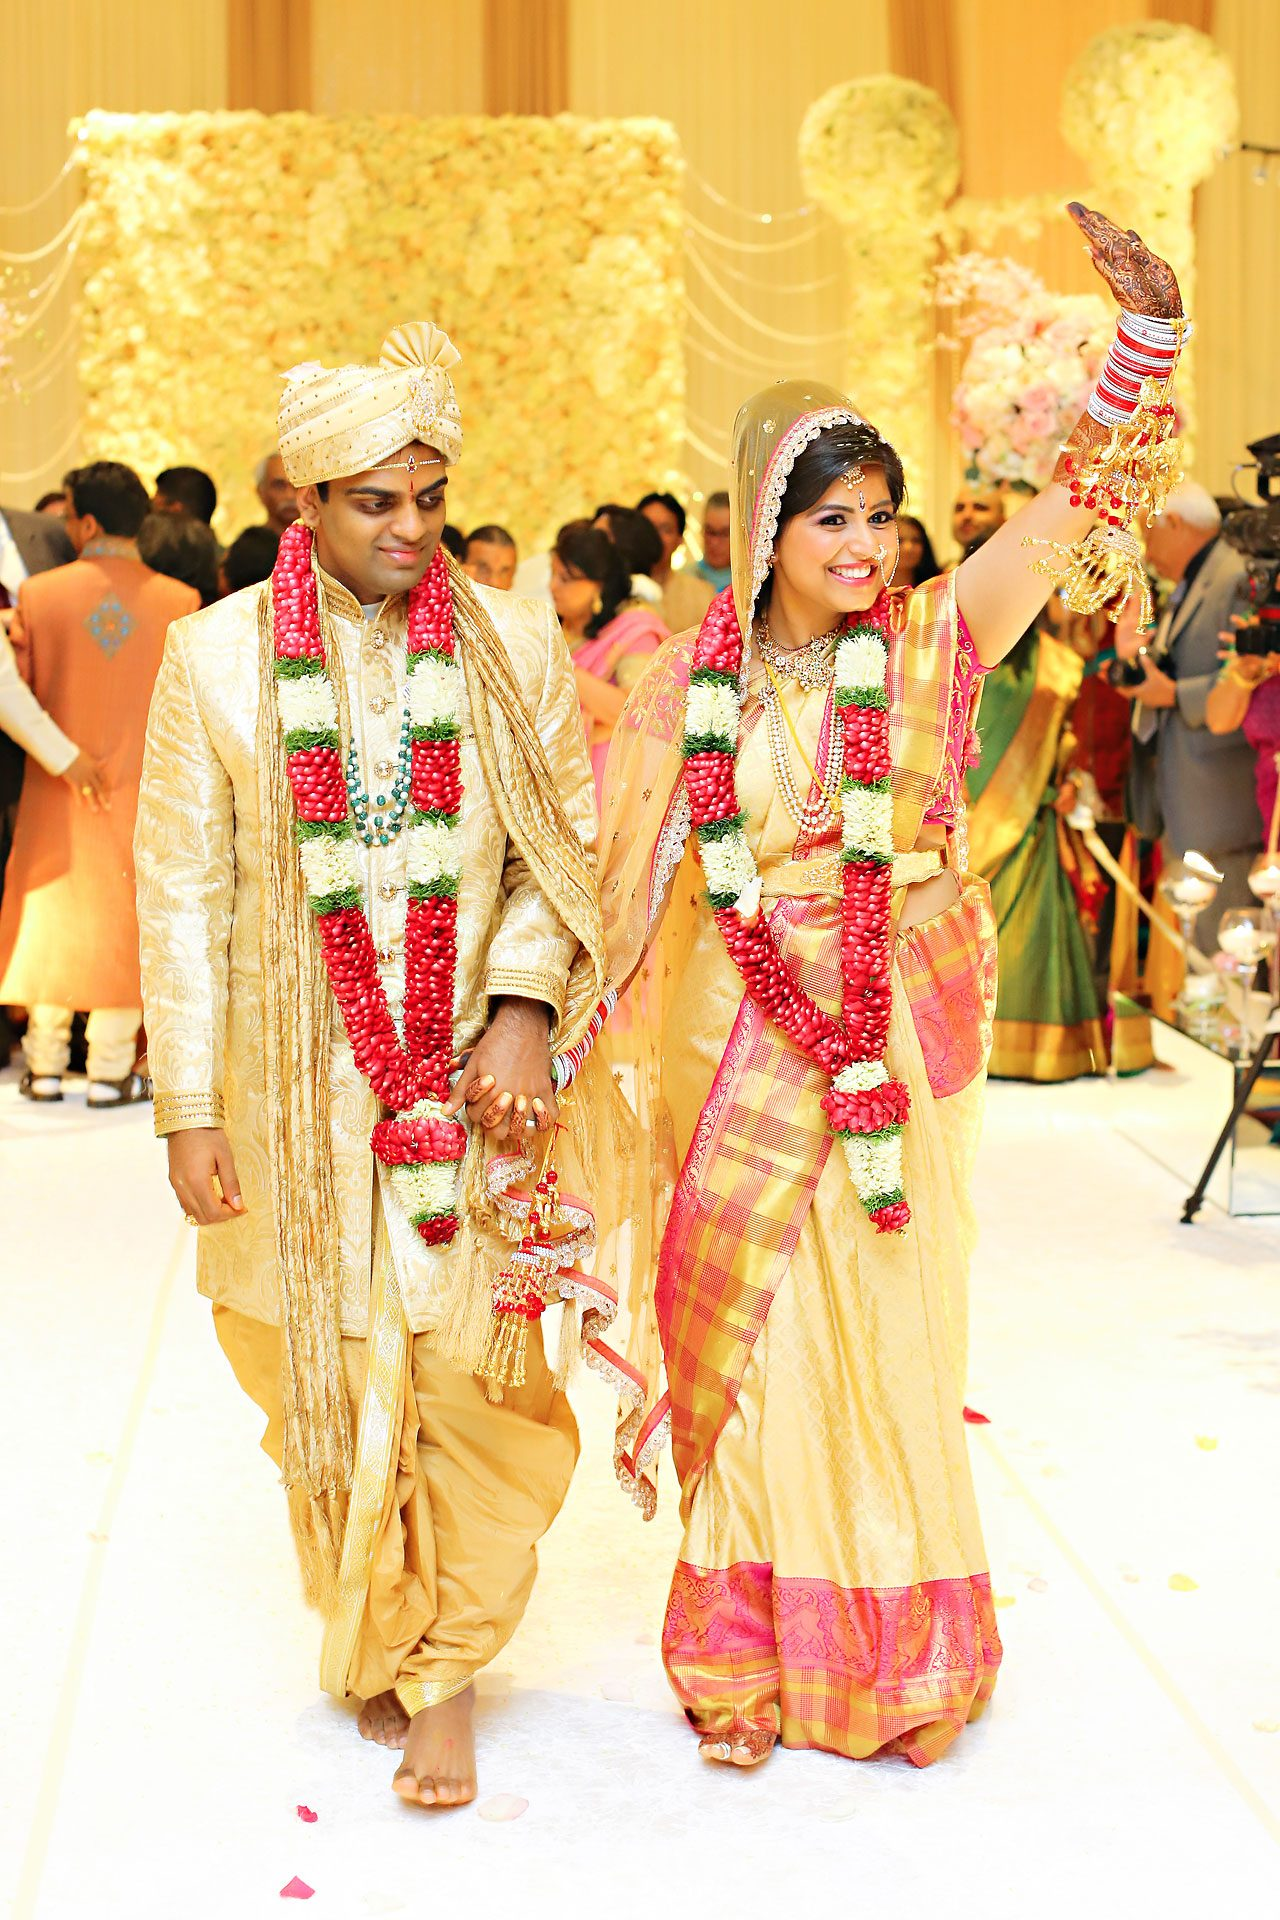 211 Vandana Anurag Indianapolis Indian Wedding